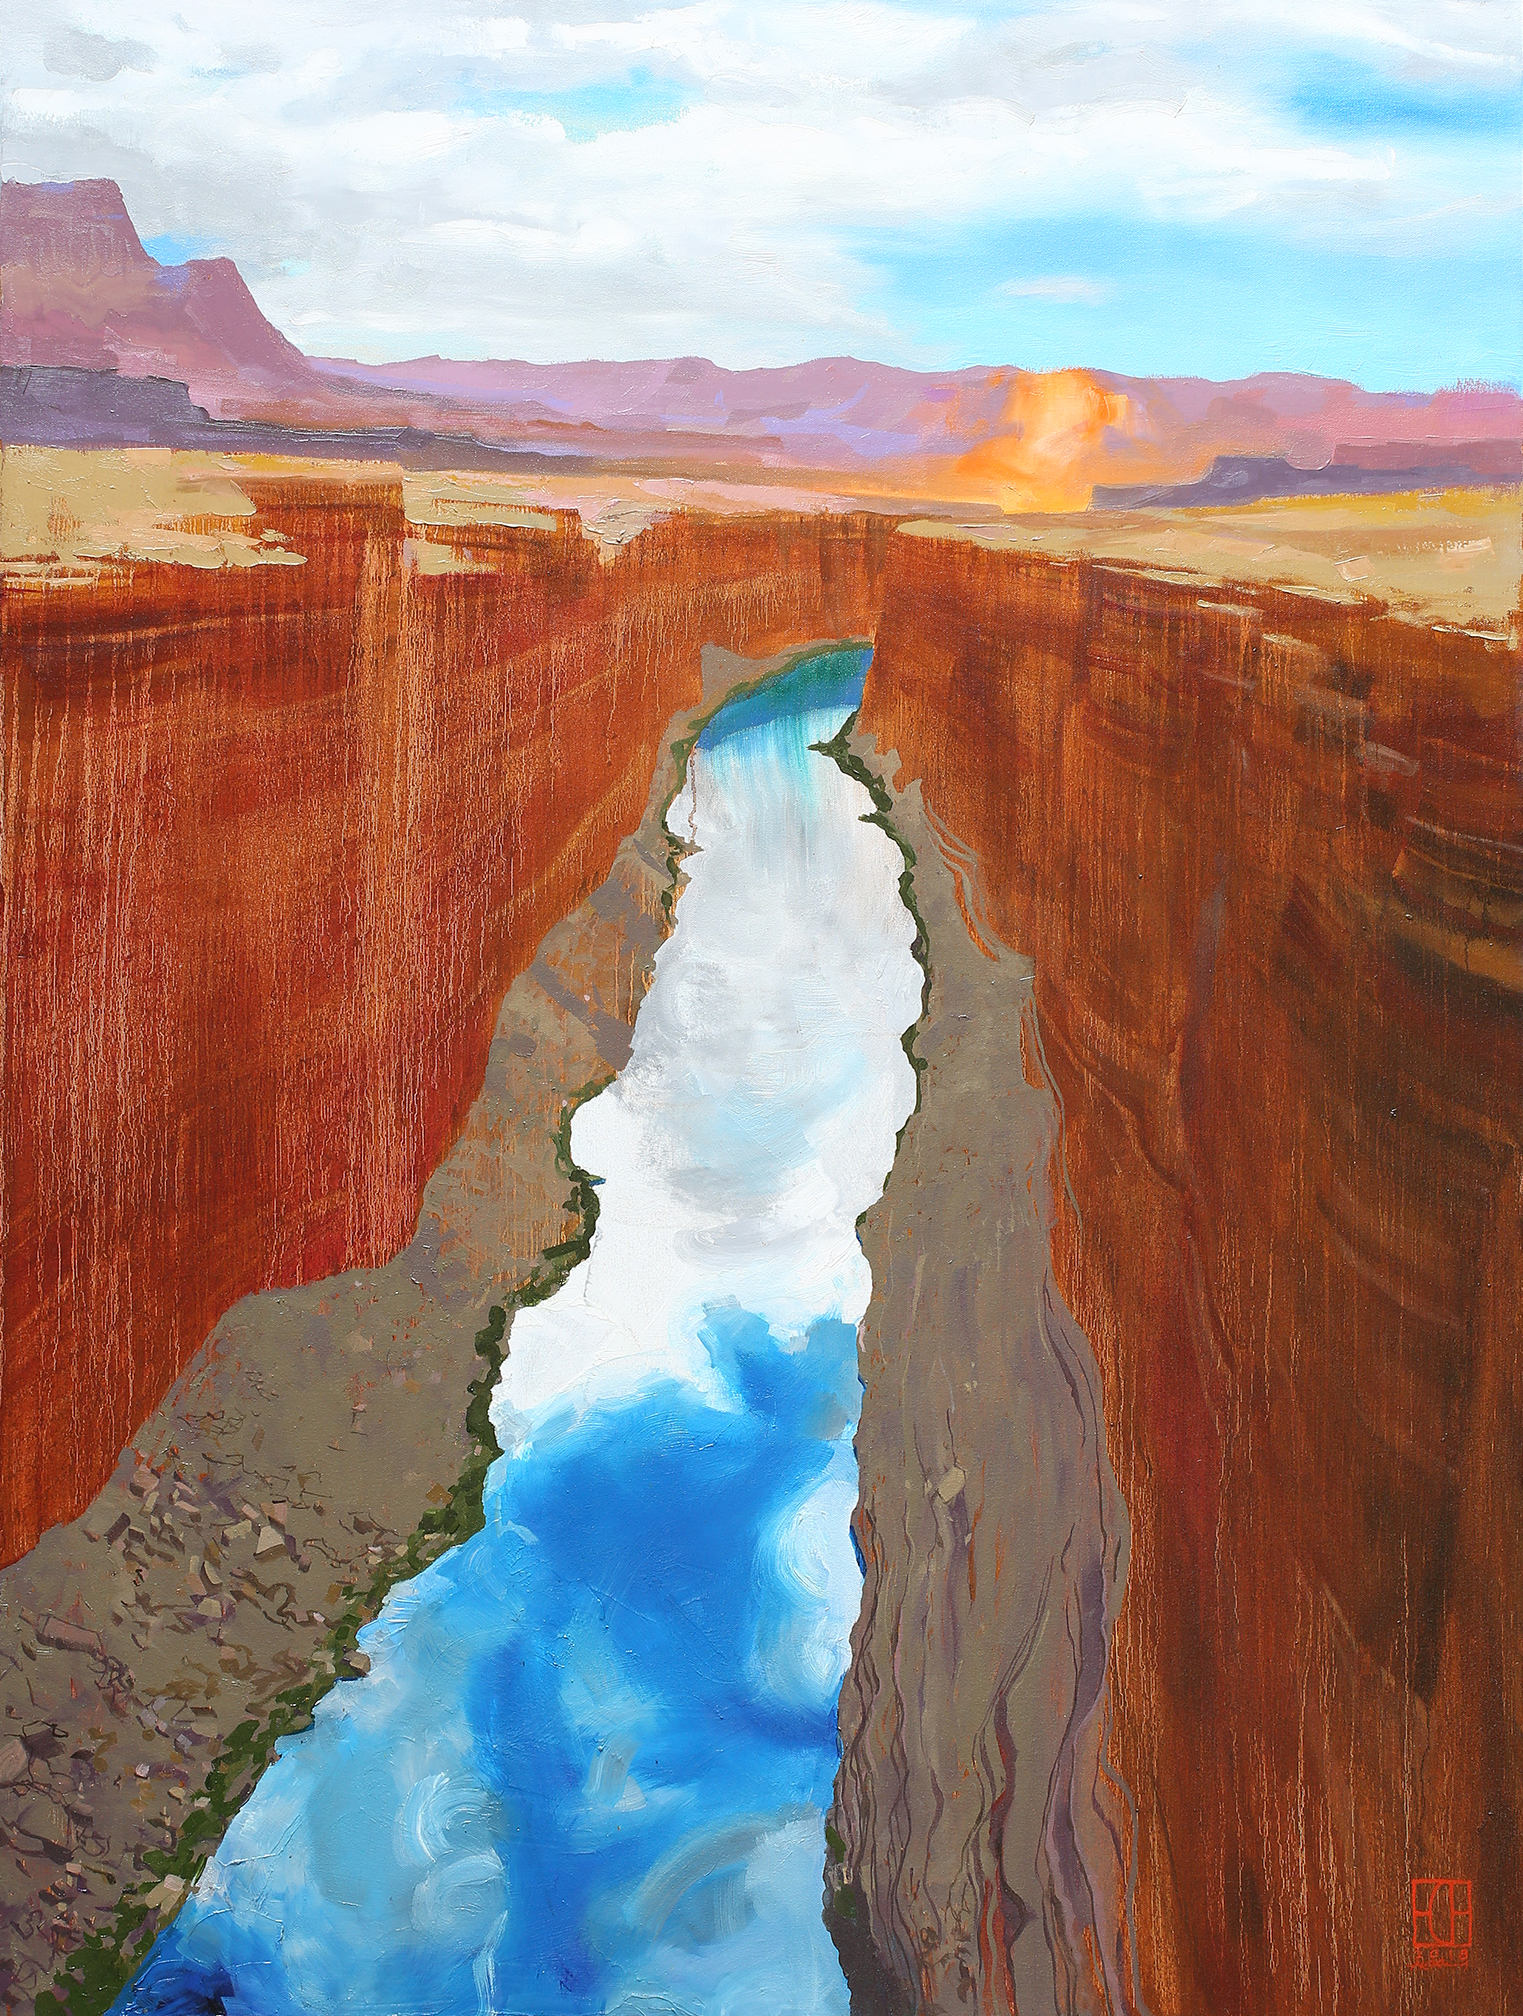 Marble Canyon Rocks & Water